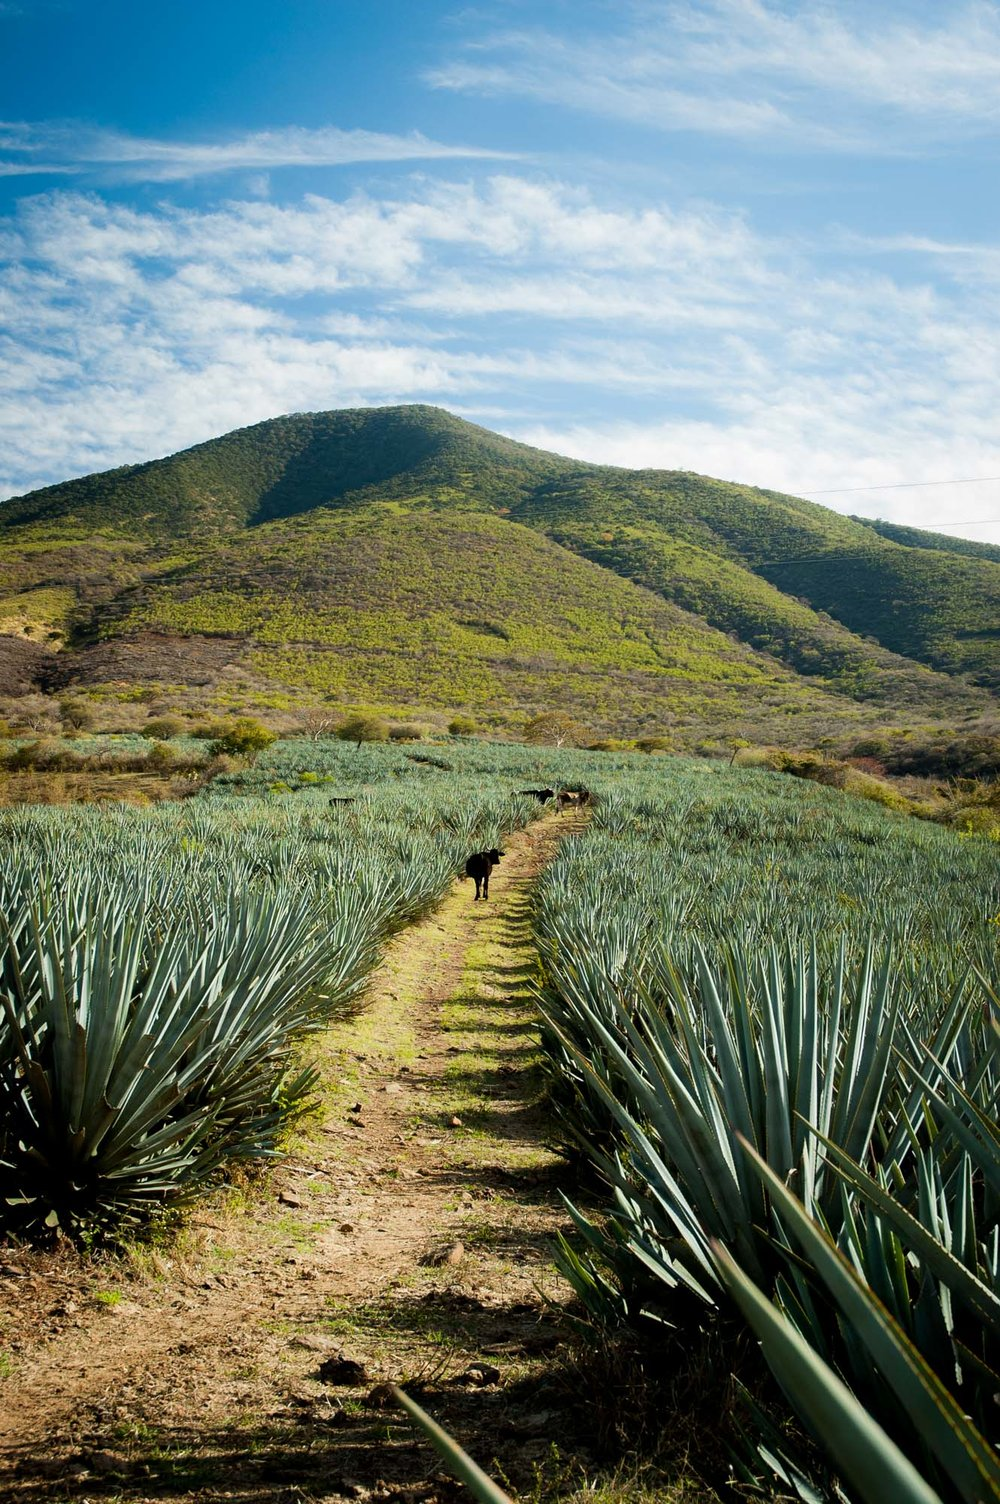 Agave Plantation, 'Succulent Mexico' Series | Mexico